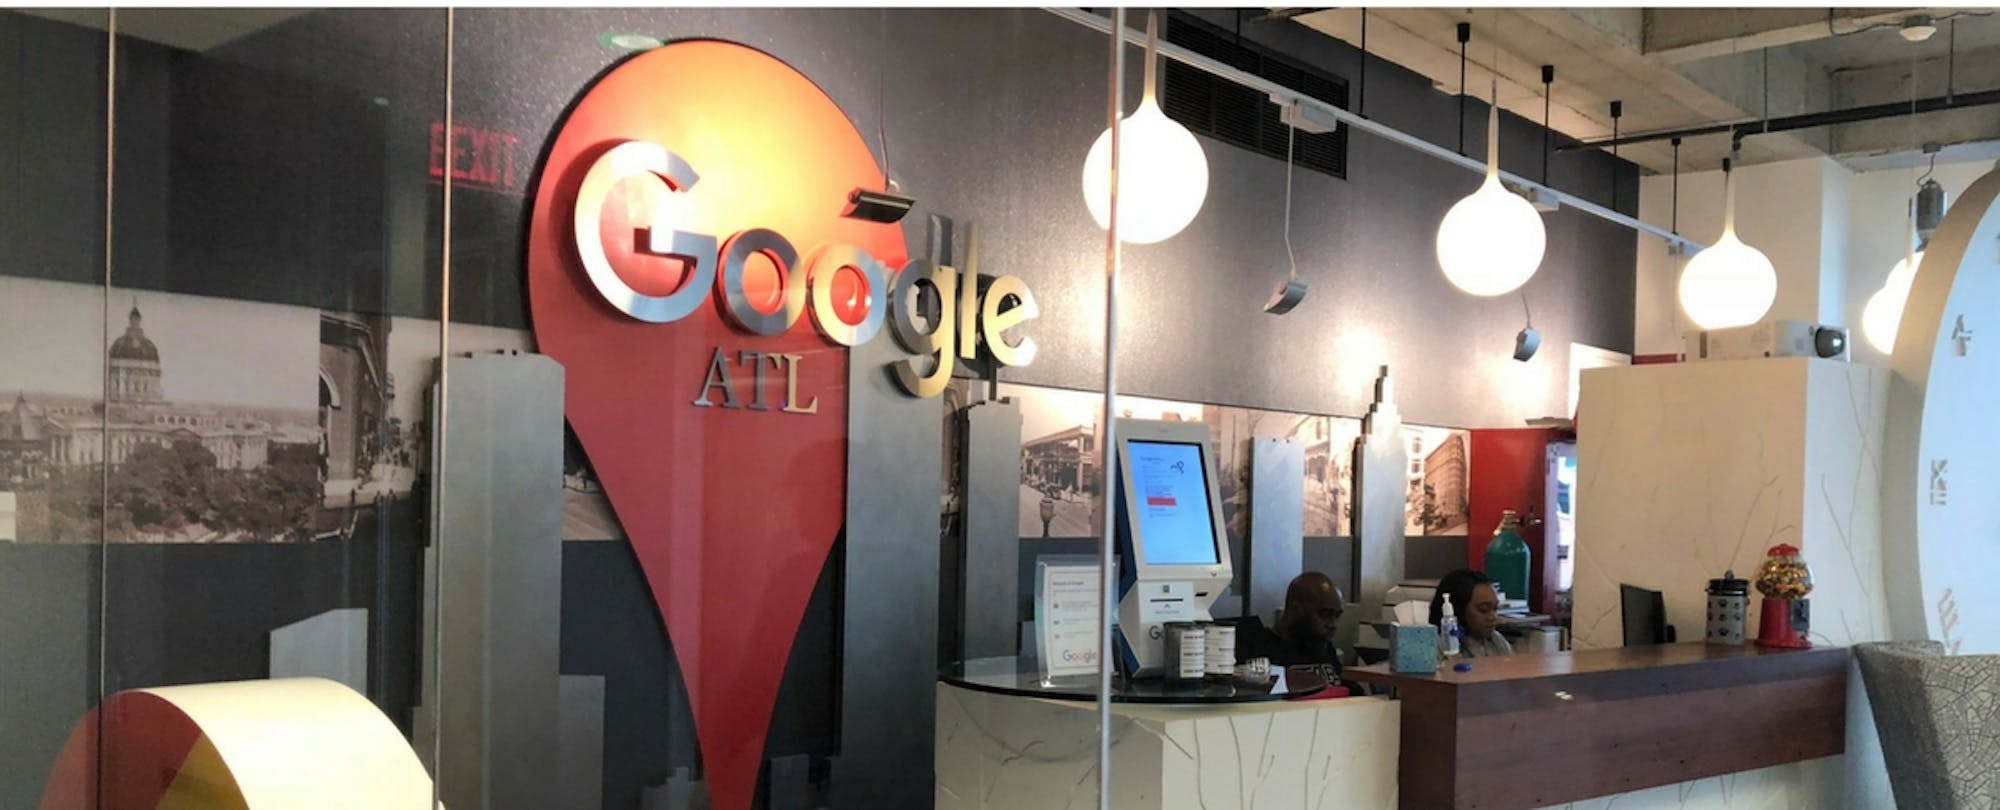 At Google's Atlanta Offices, Georgia Educators Strive to Design a Culture of Innovation